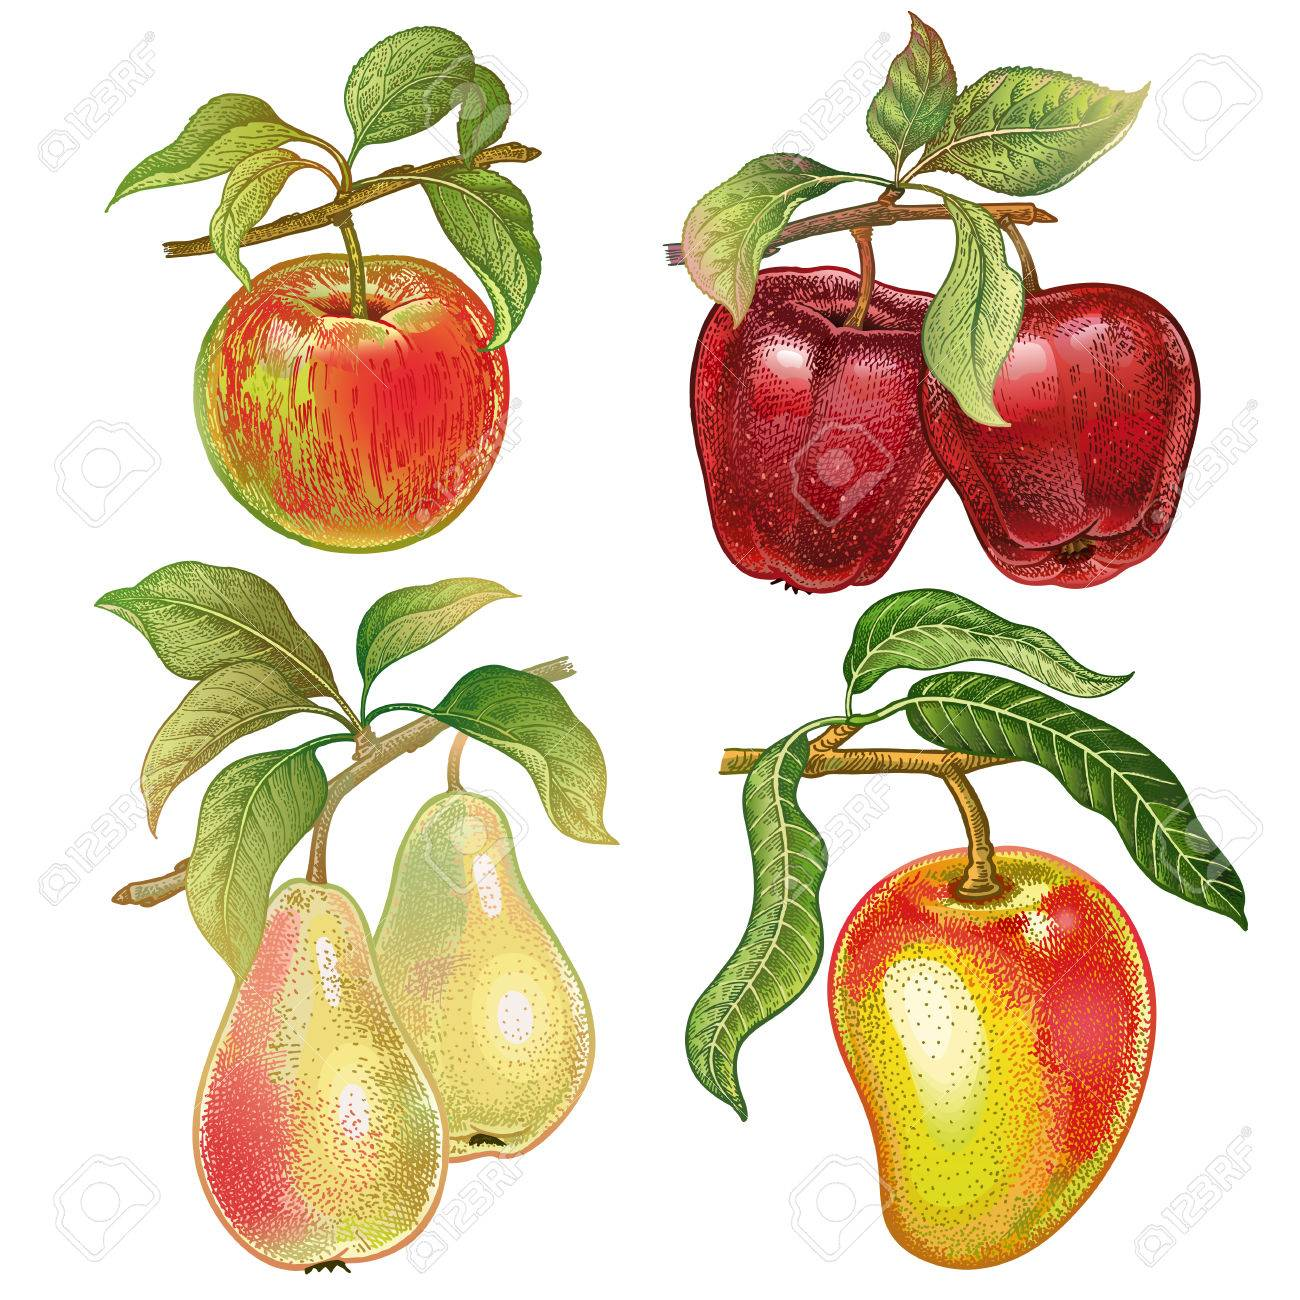 Berries And Fruits Set. Realistic Hand Drawing Made With Colored ...